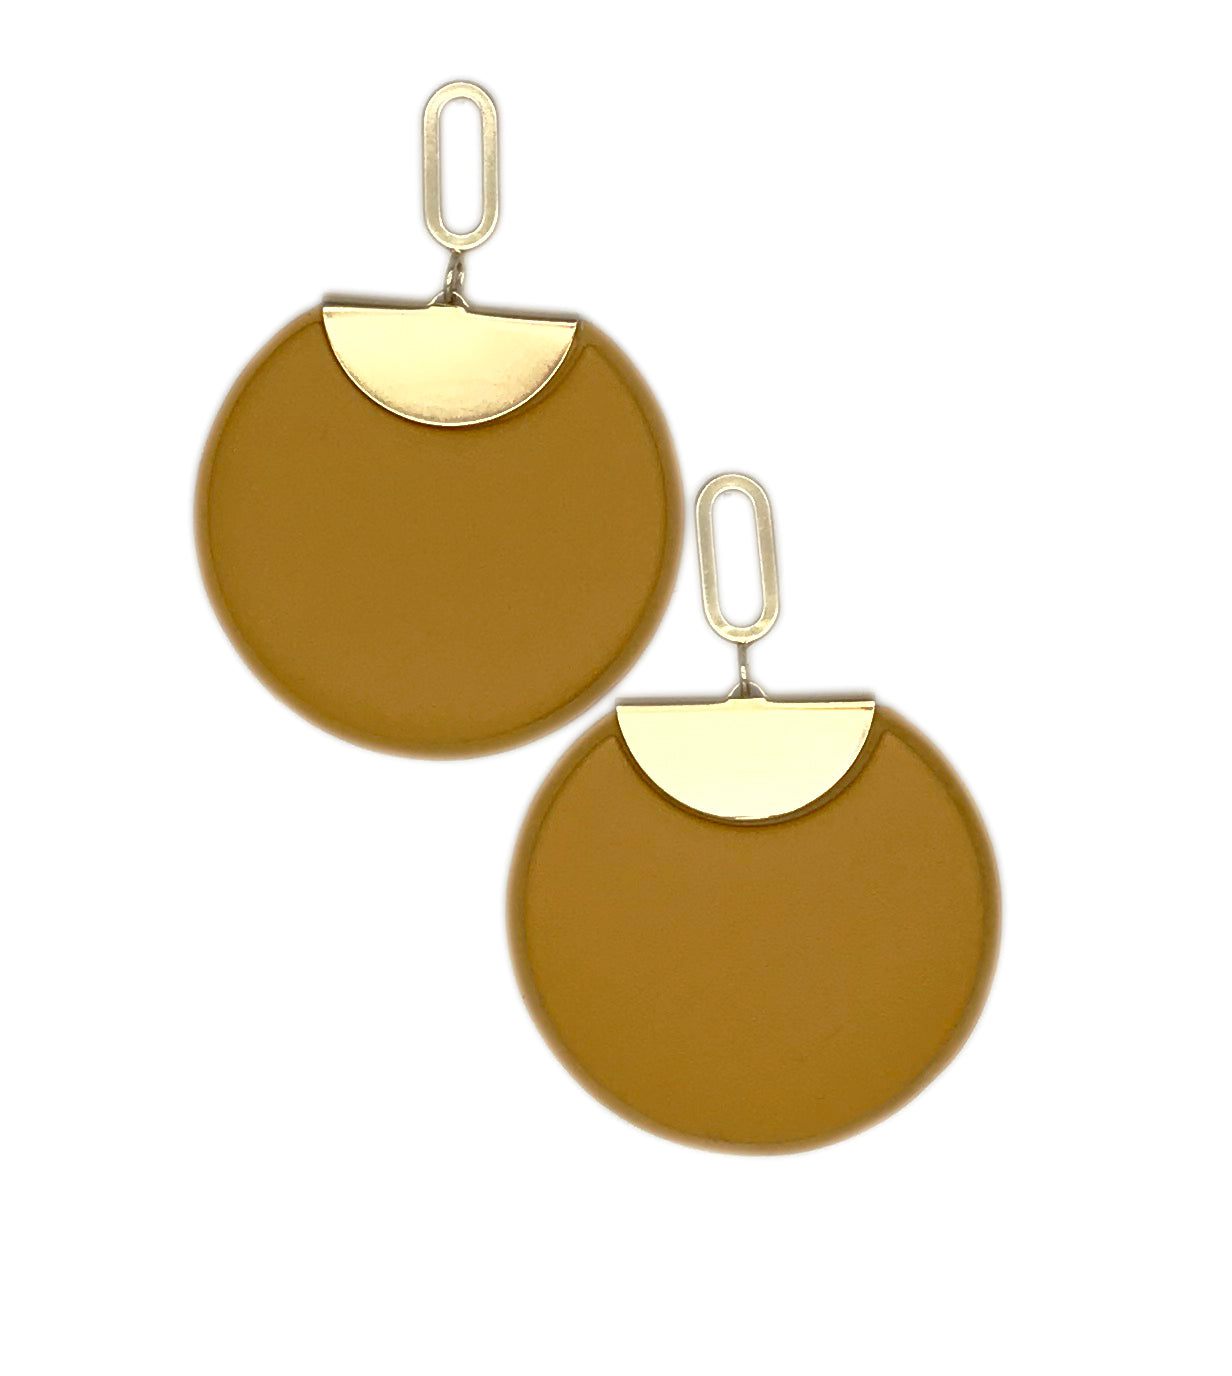 Oversized Disc Earrings - Cocus Pocus